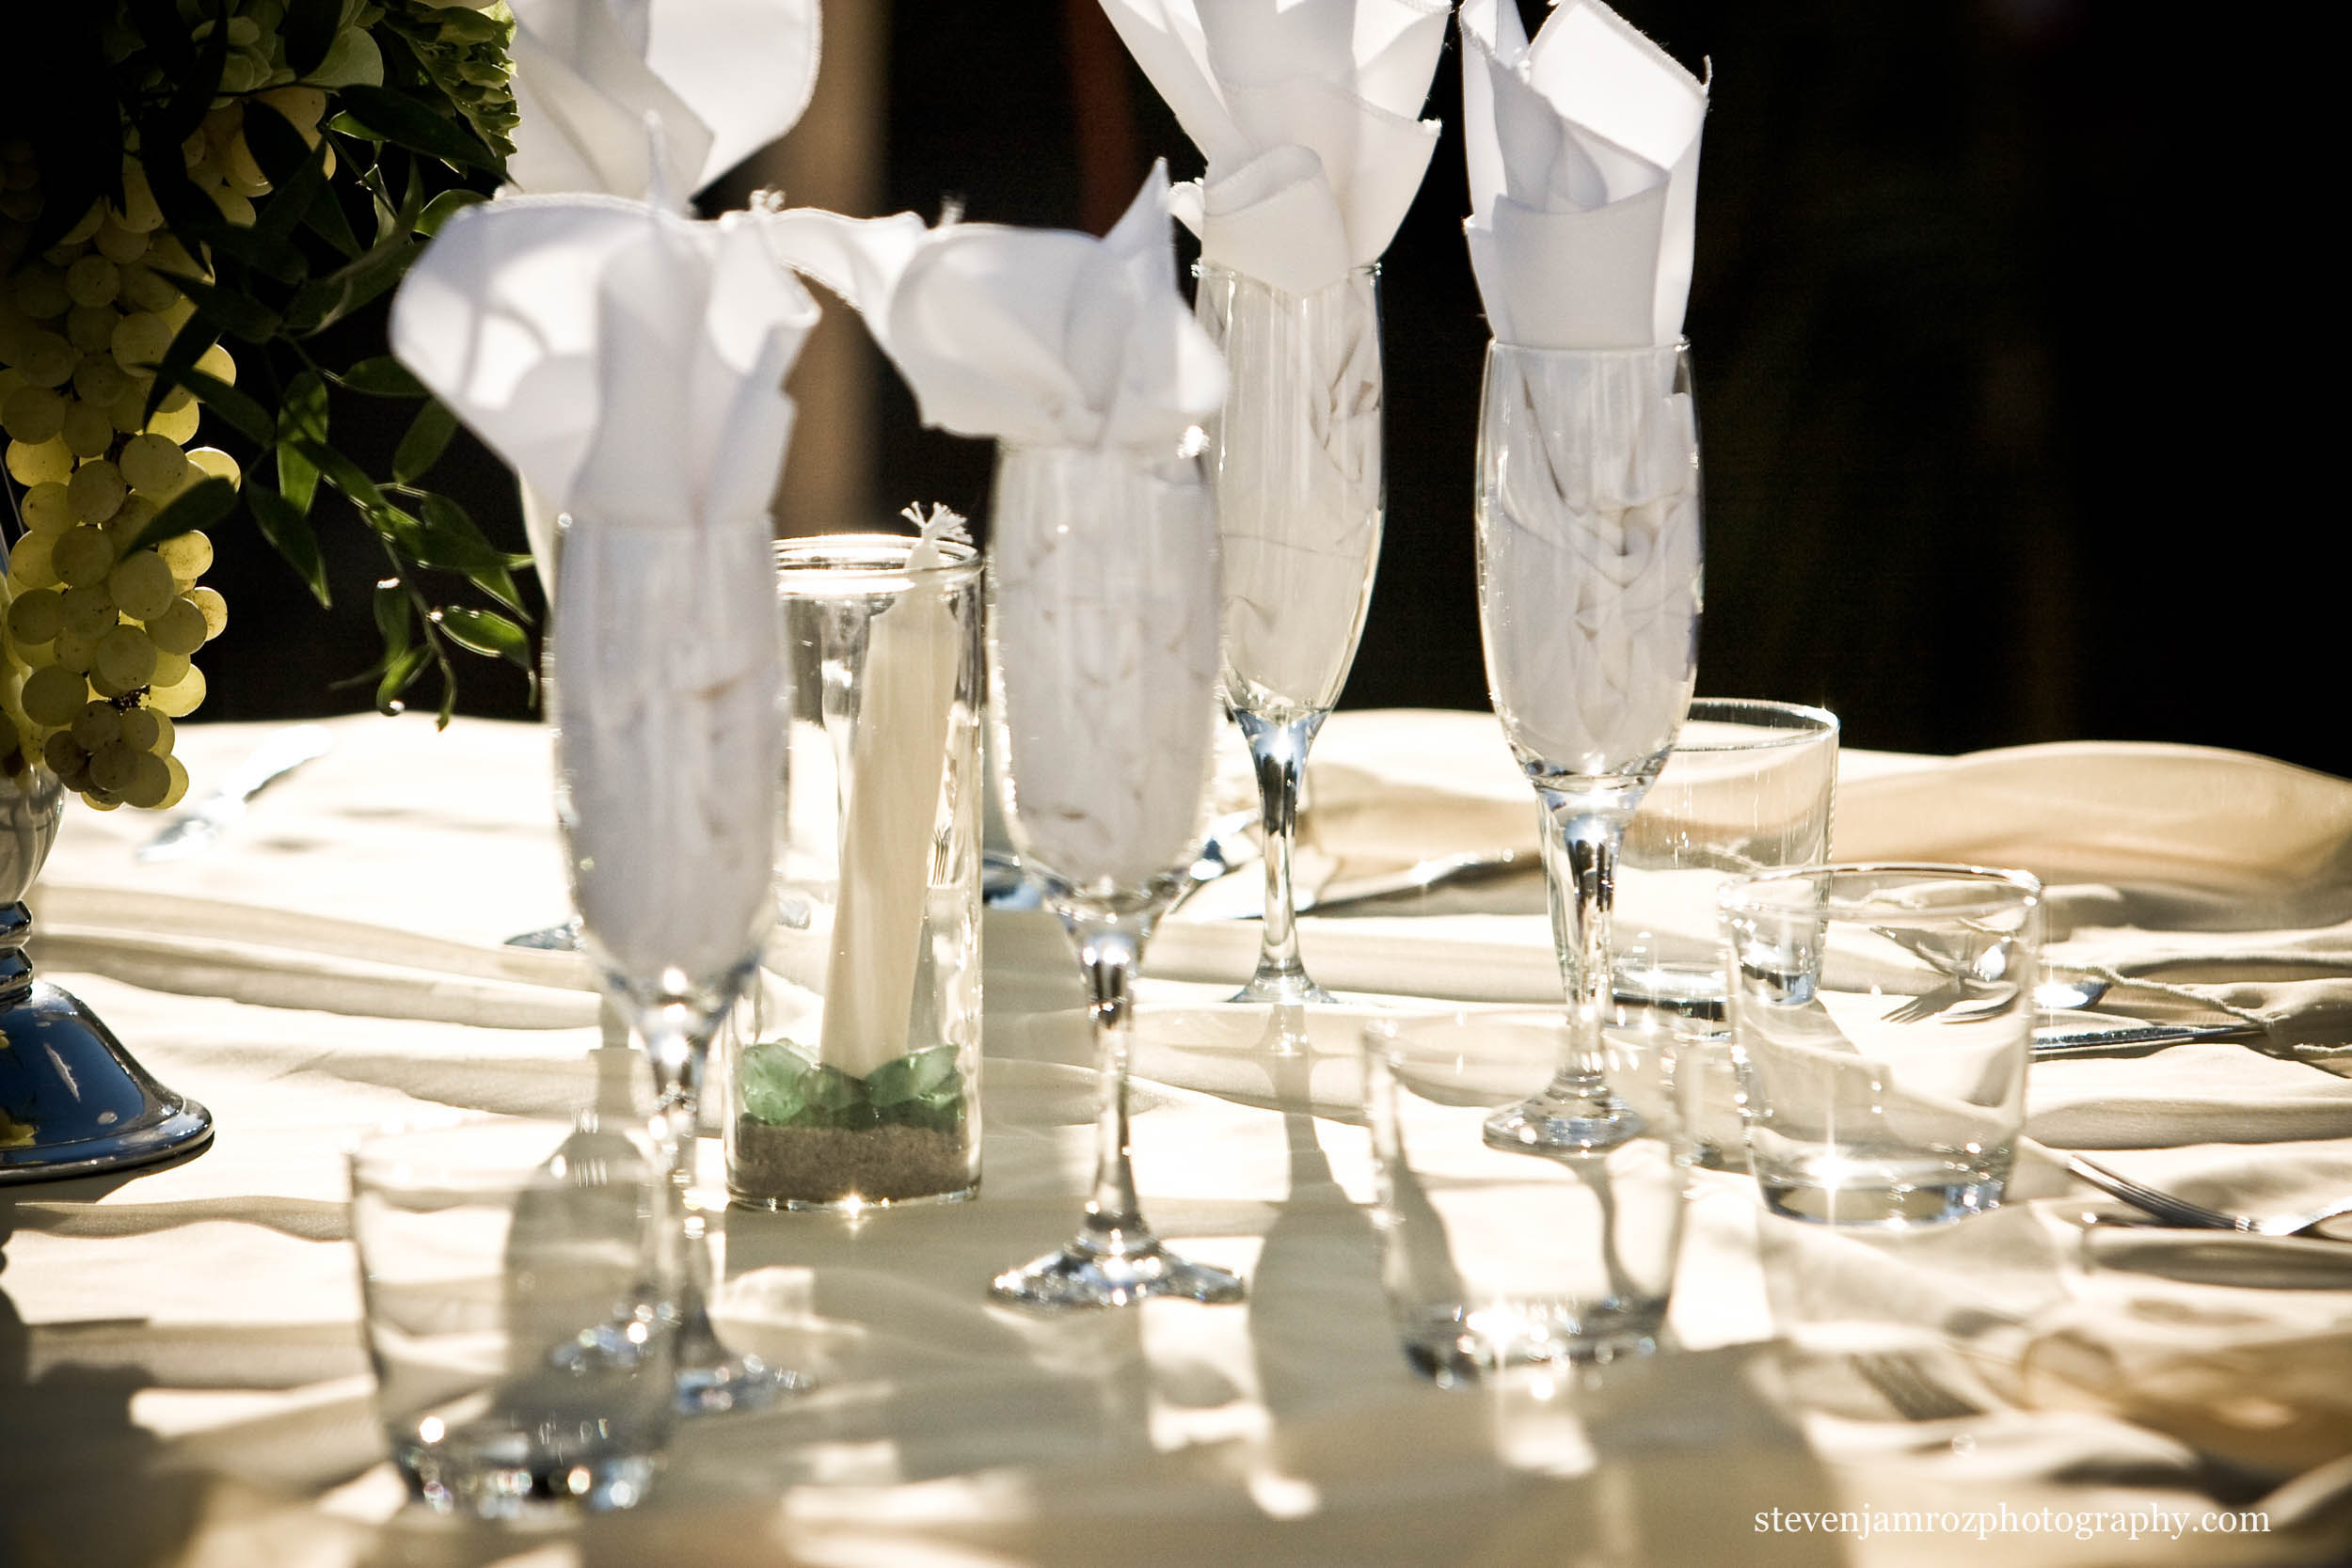 table-settings-raleigh-wedding-photographer-steven-jamroz-photography-0002.jpg